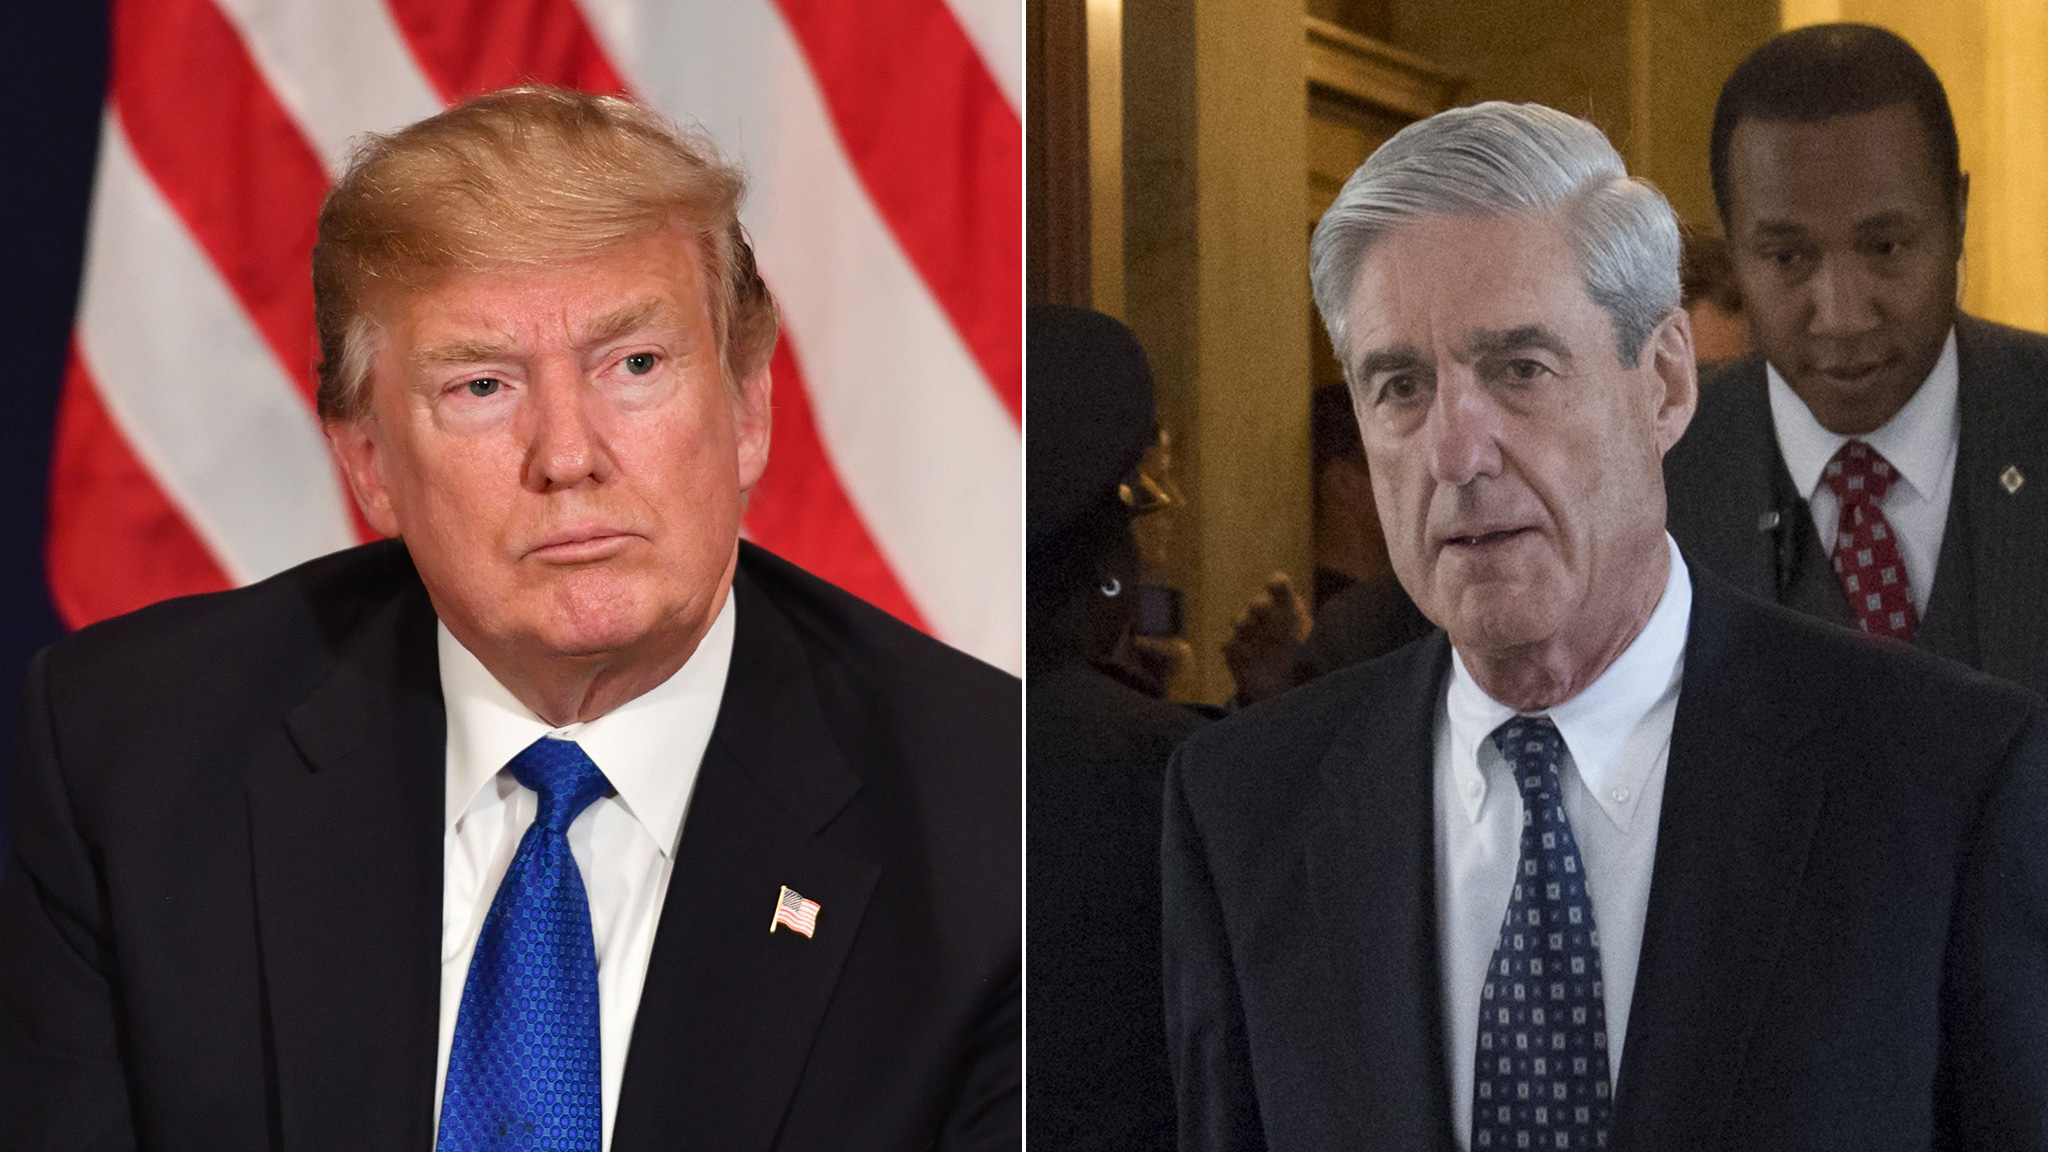 Trump 'ordered firing of Mueller' over Russia probe